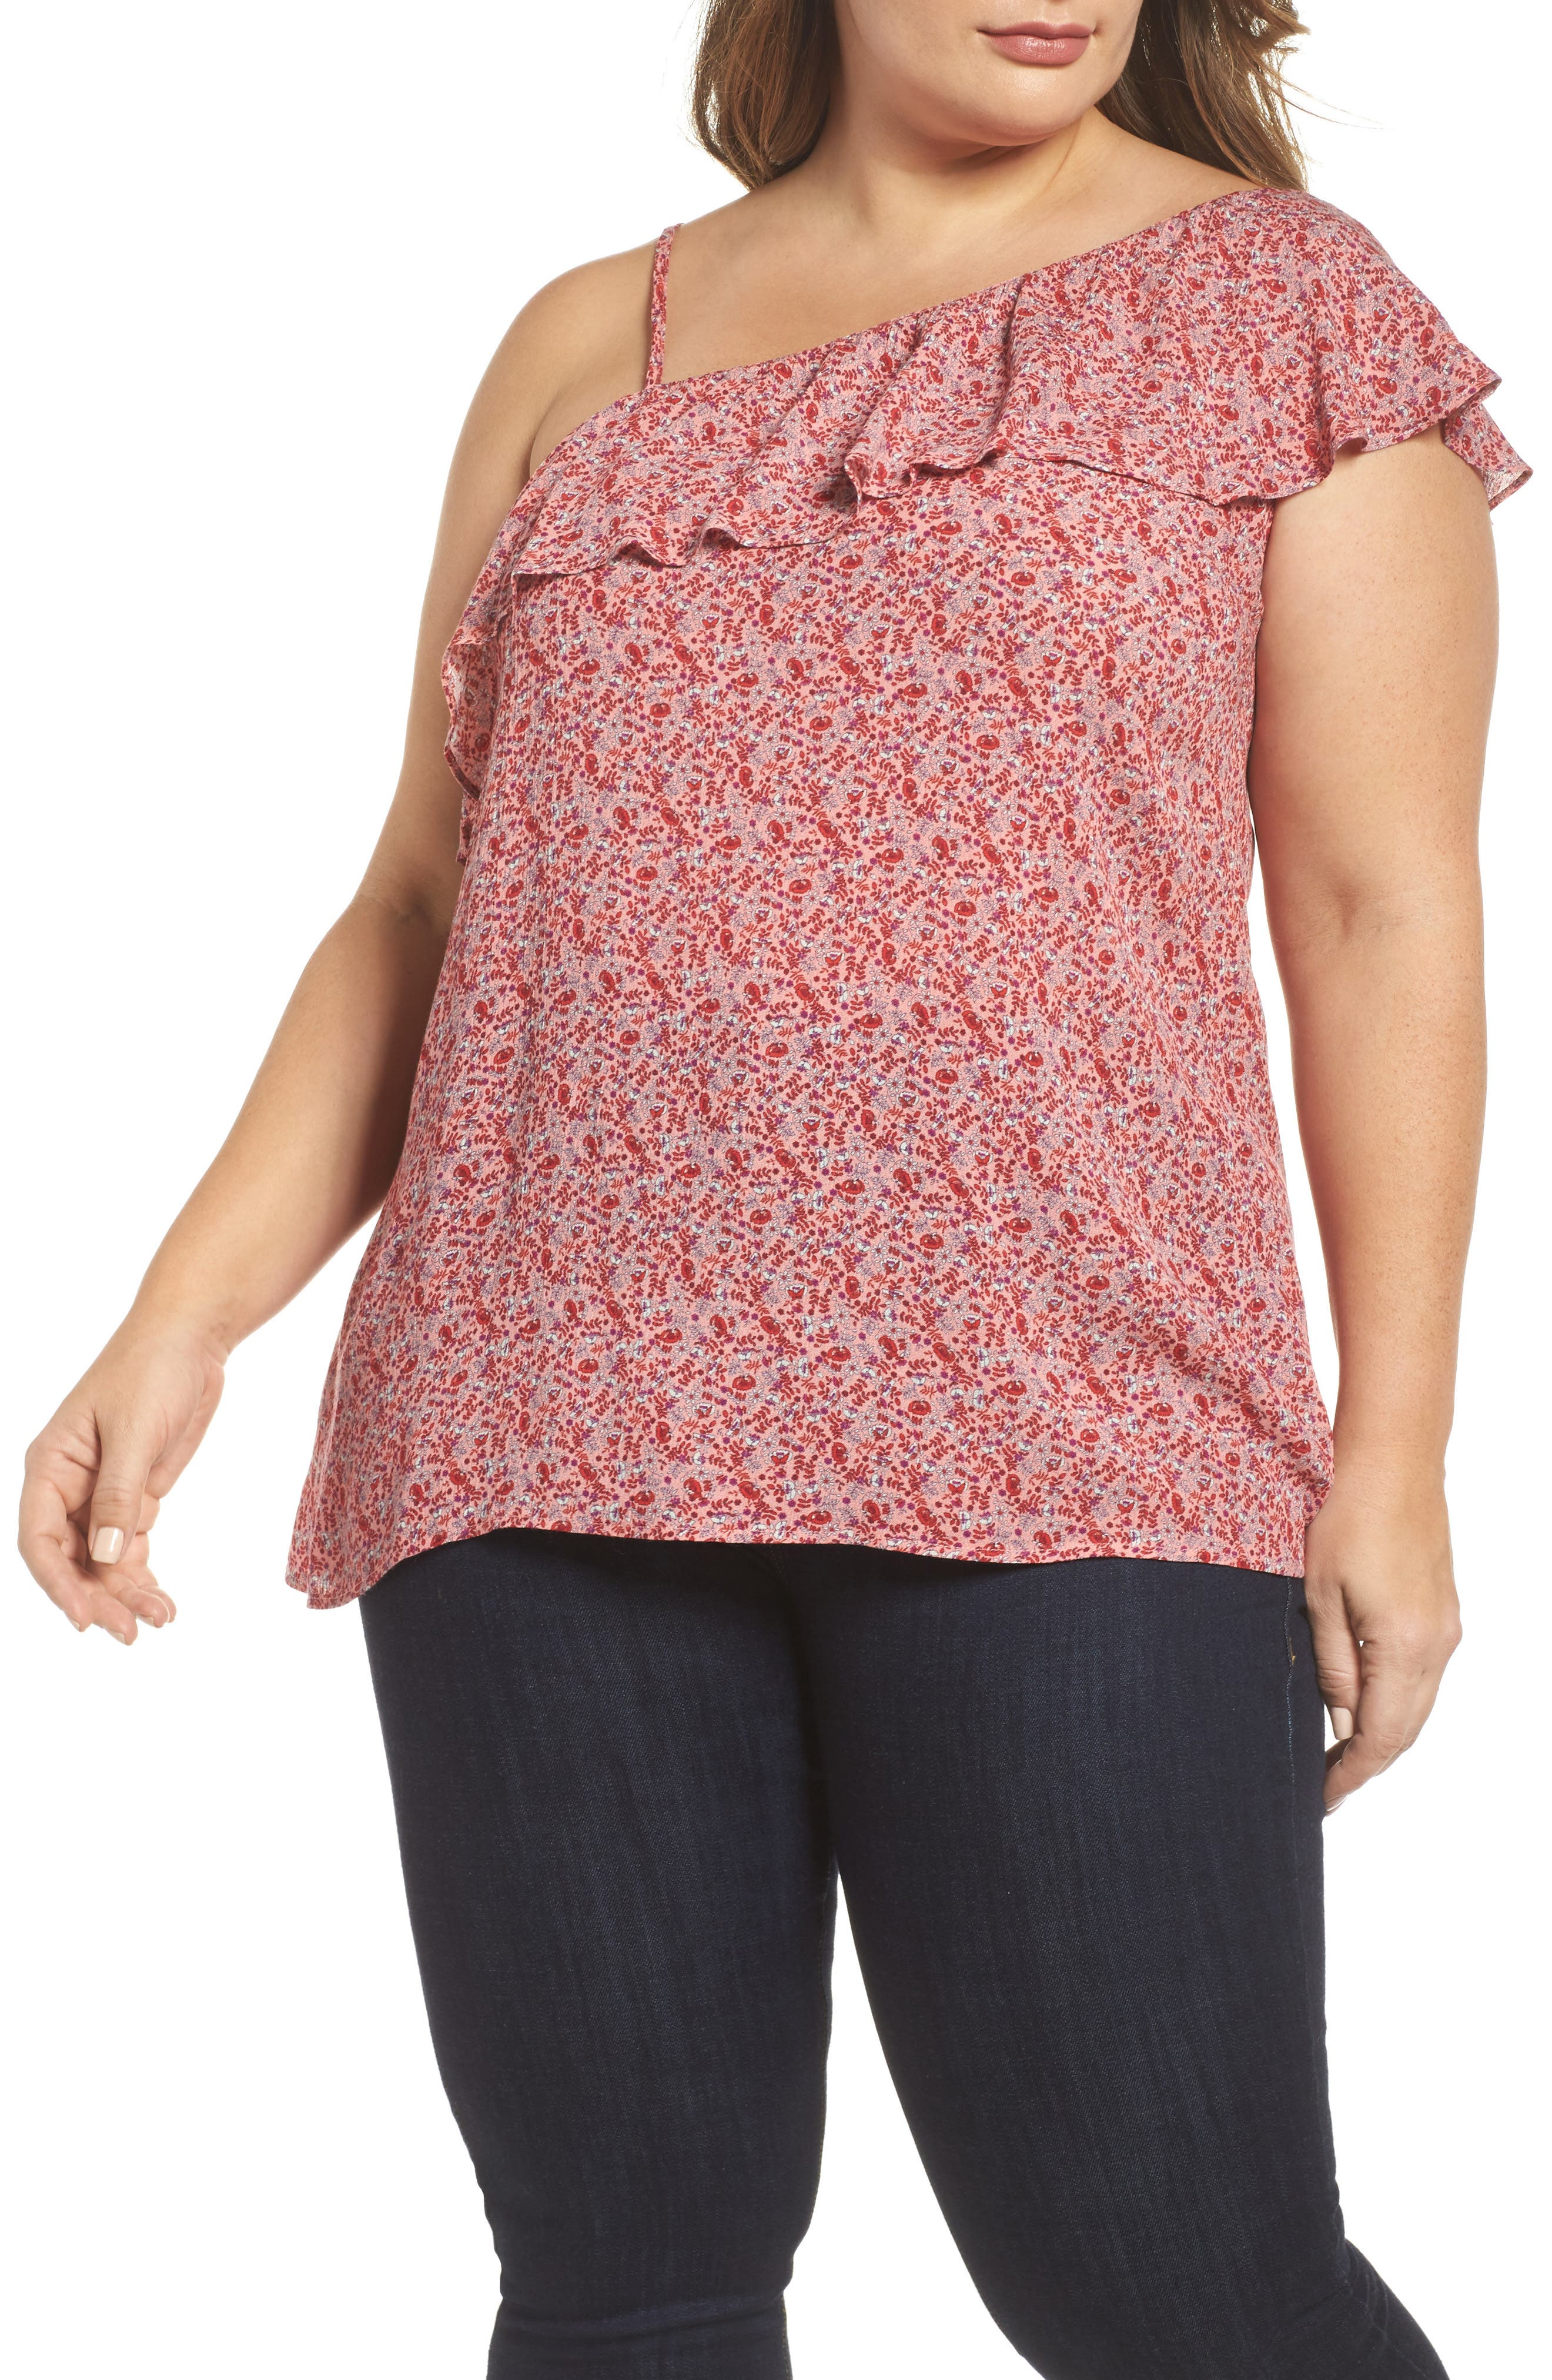 City Chic Baby Blossom One-Shoulder Blouse (Plus Size)